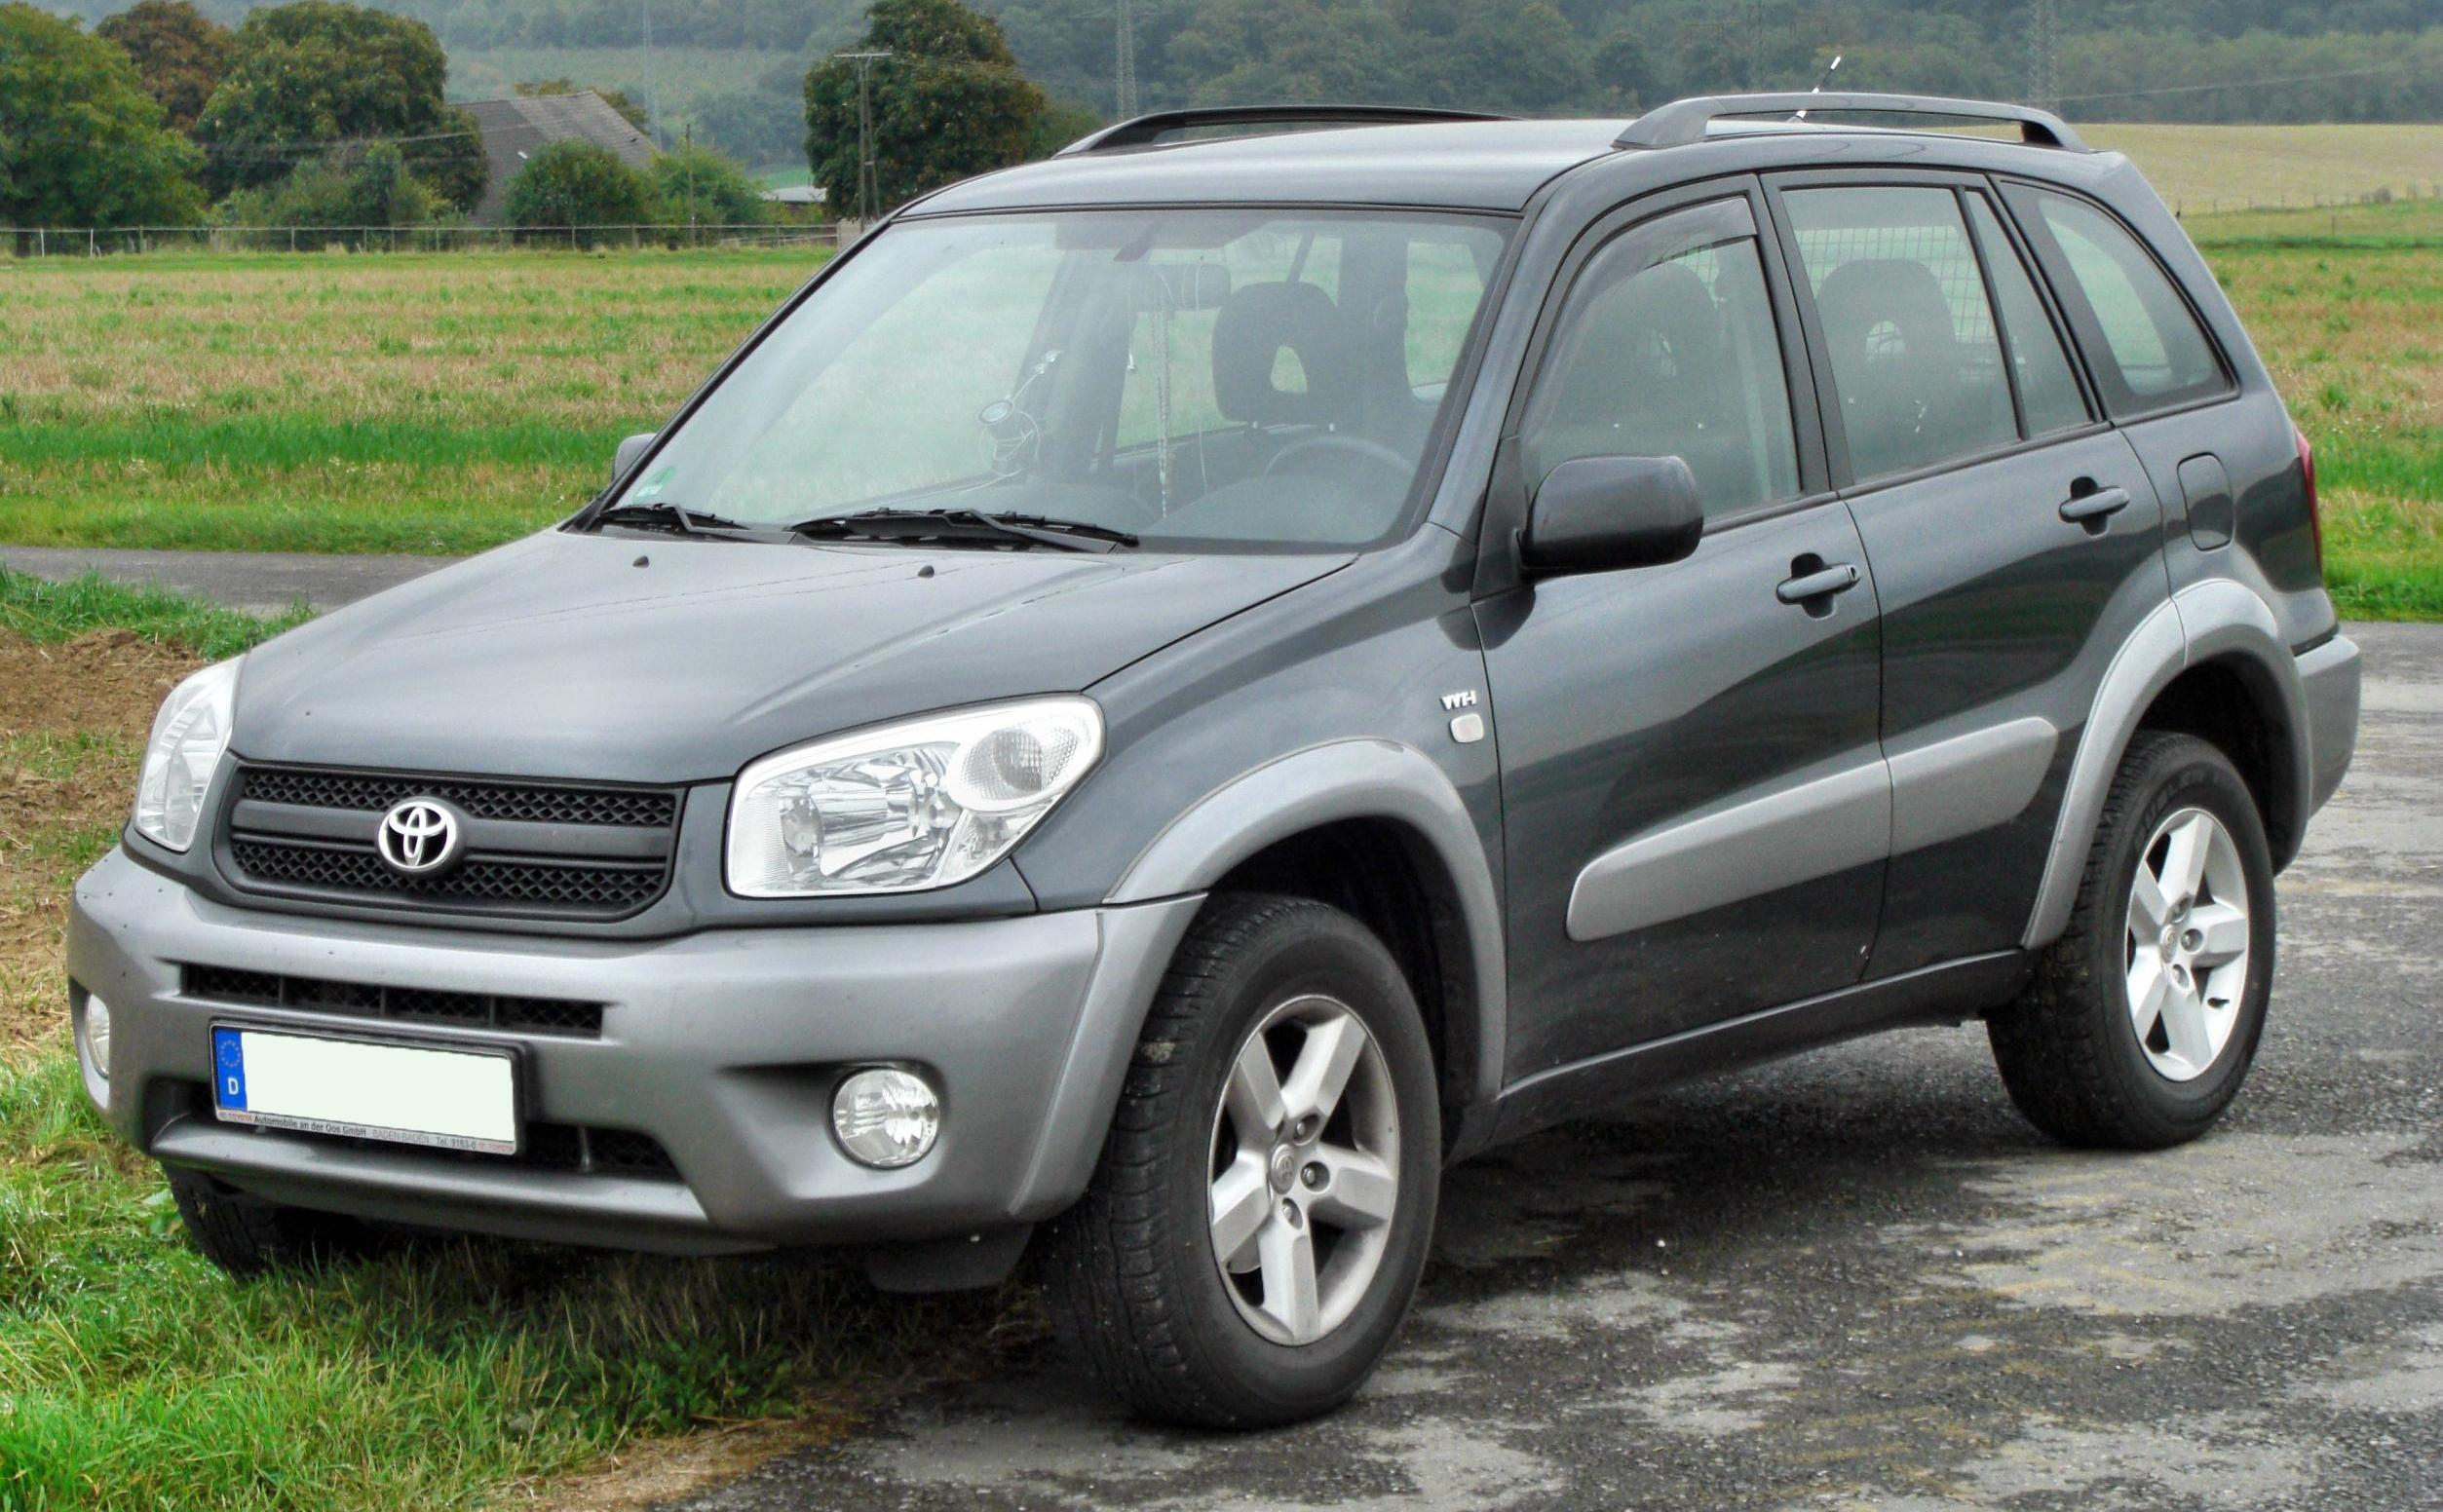 2005 toyota rav 4 ii pictures information and specs. Black Bedroom Furniture Sets. Home Design Ideas